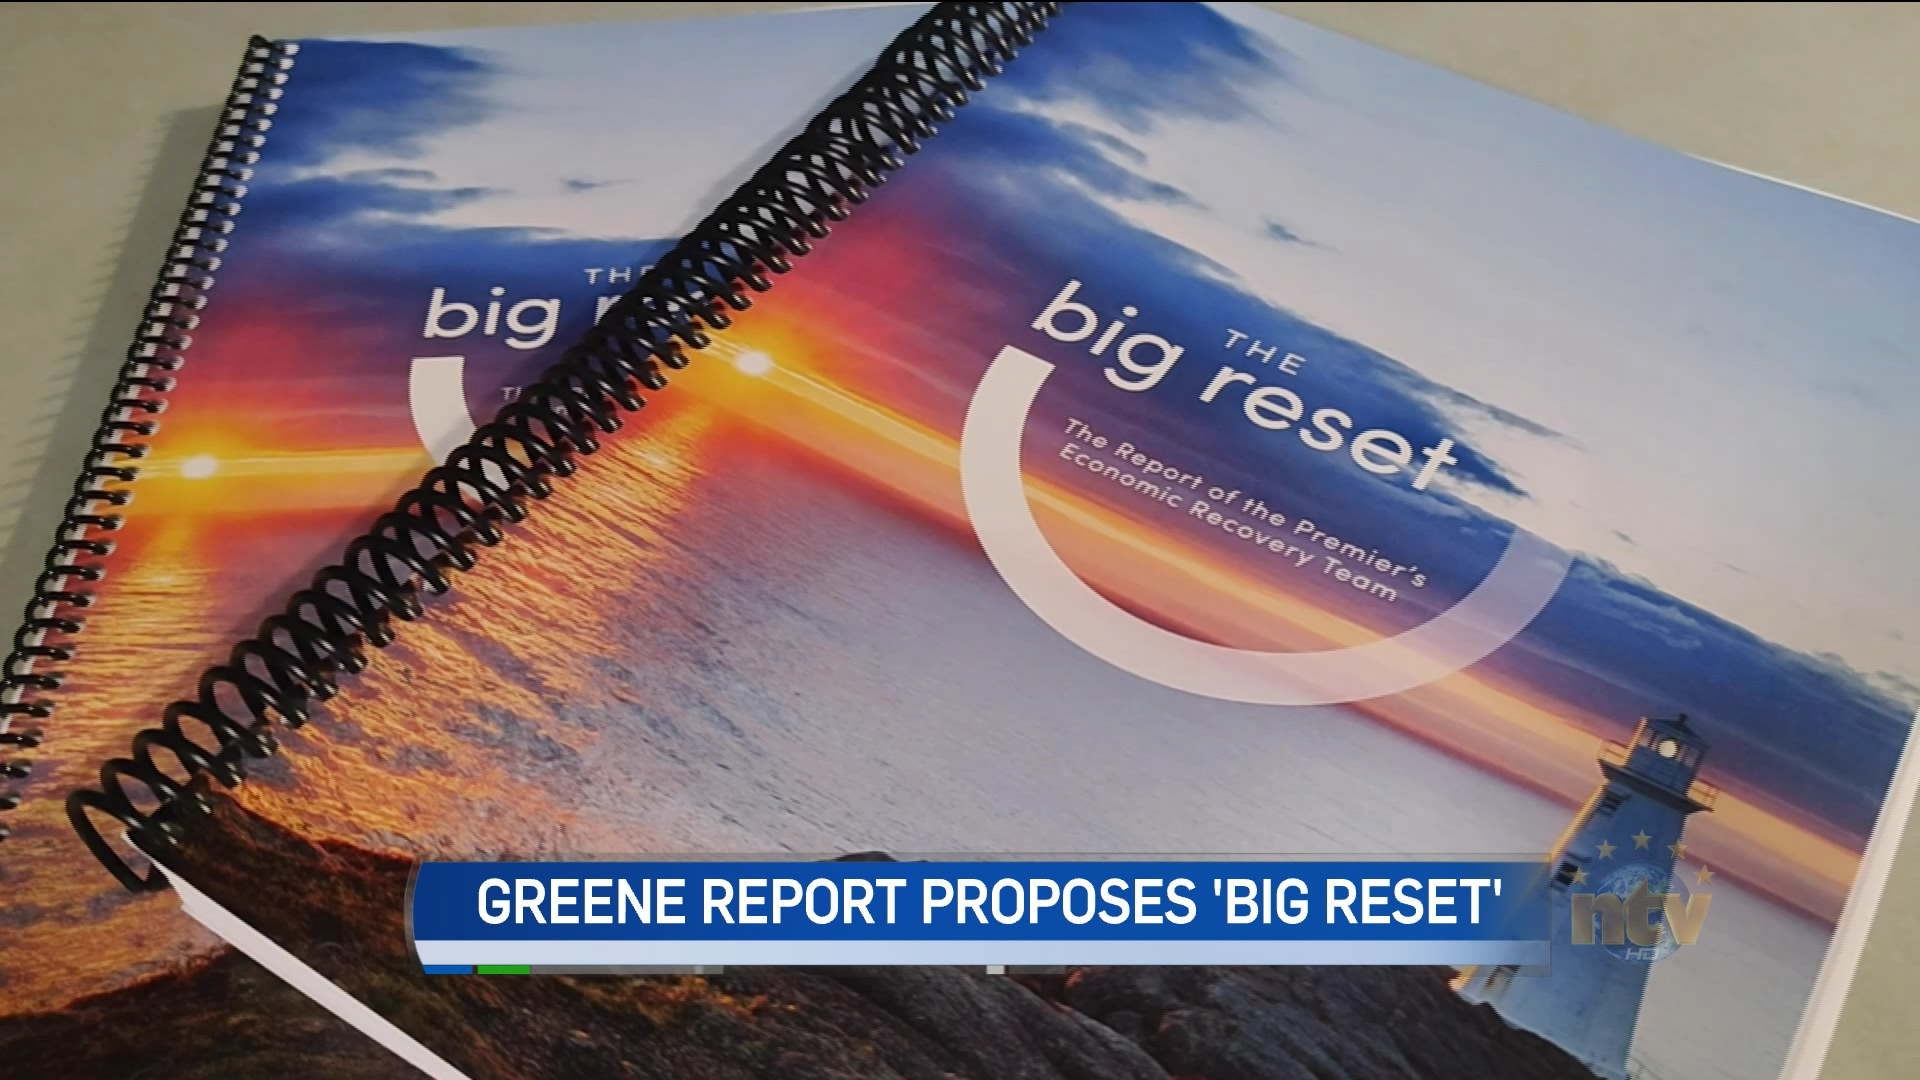 Greene report recommends 'Big Reset' with tax hikes and spending cuts